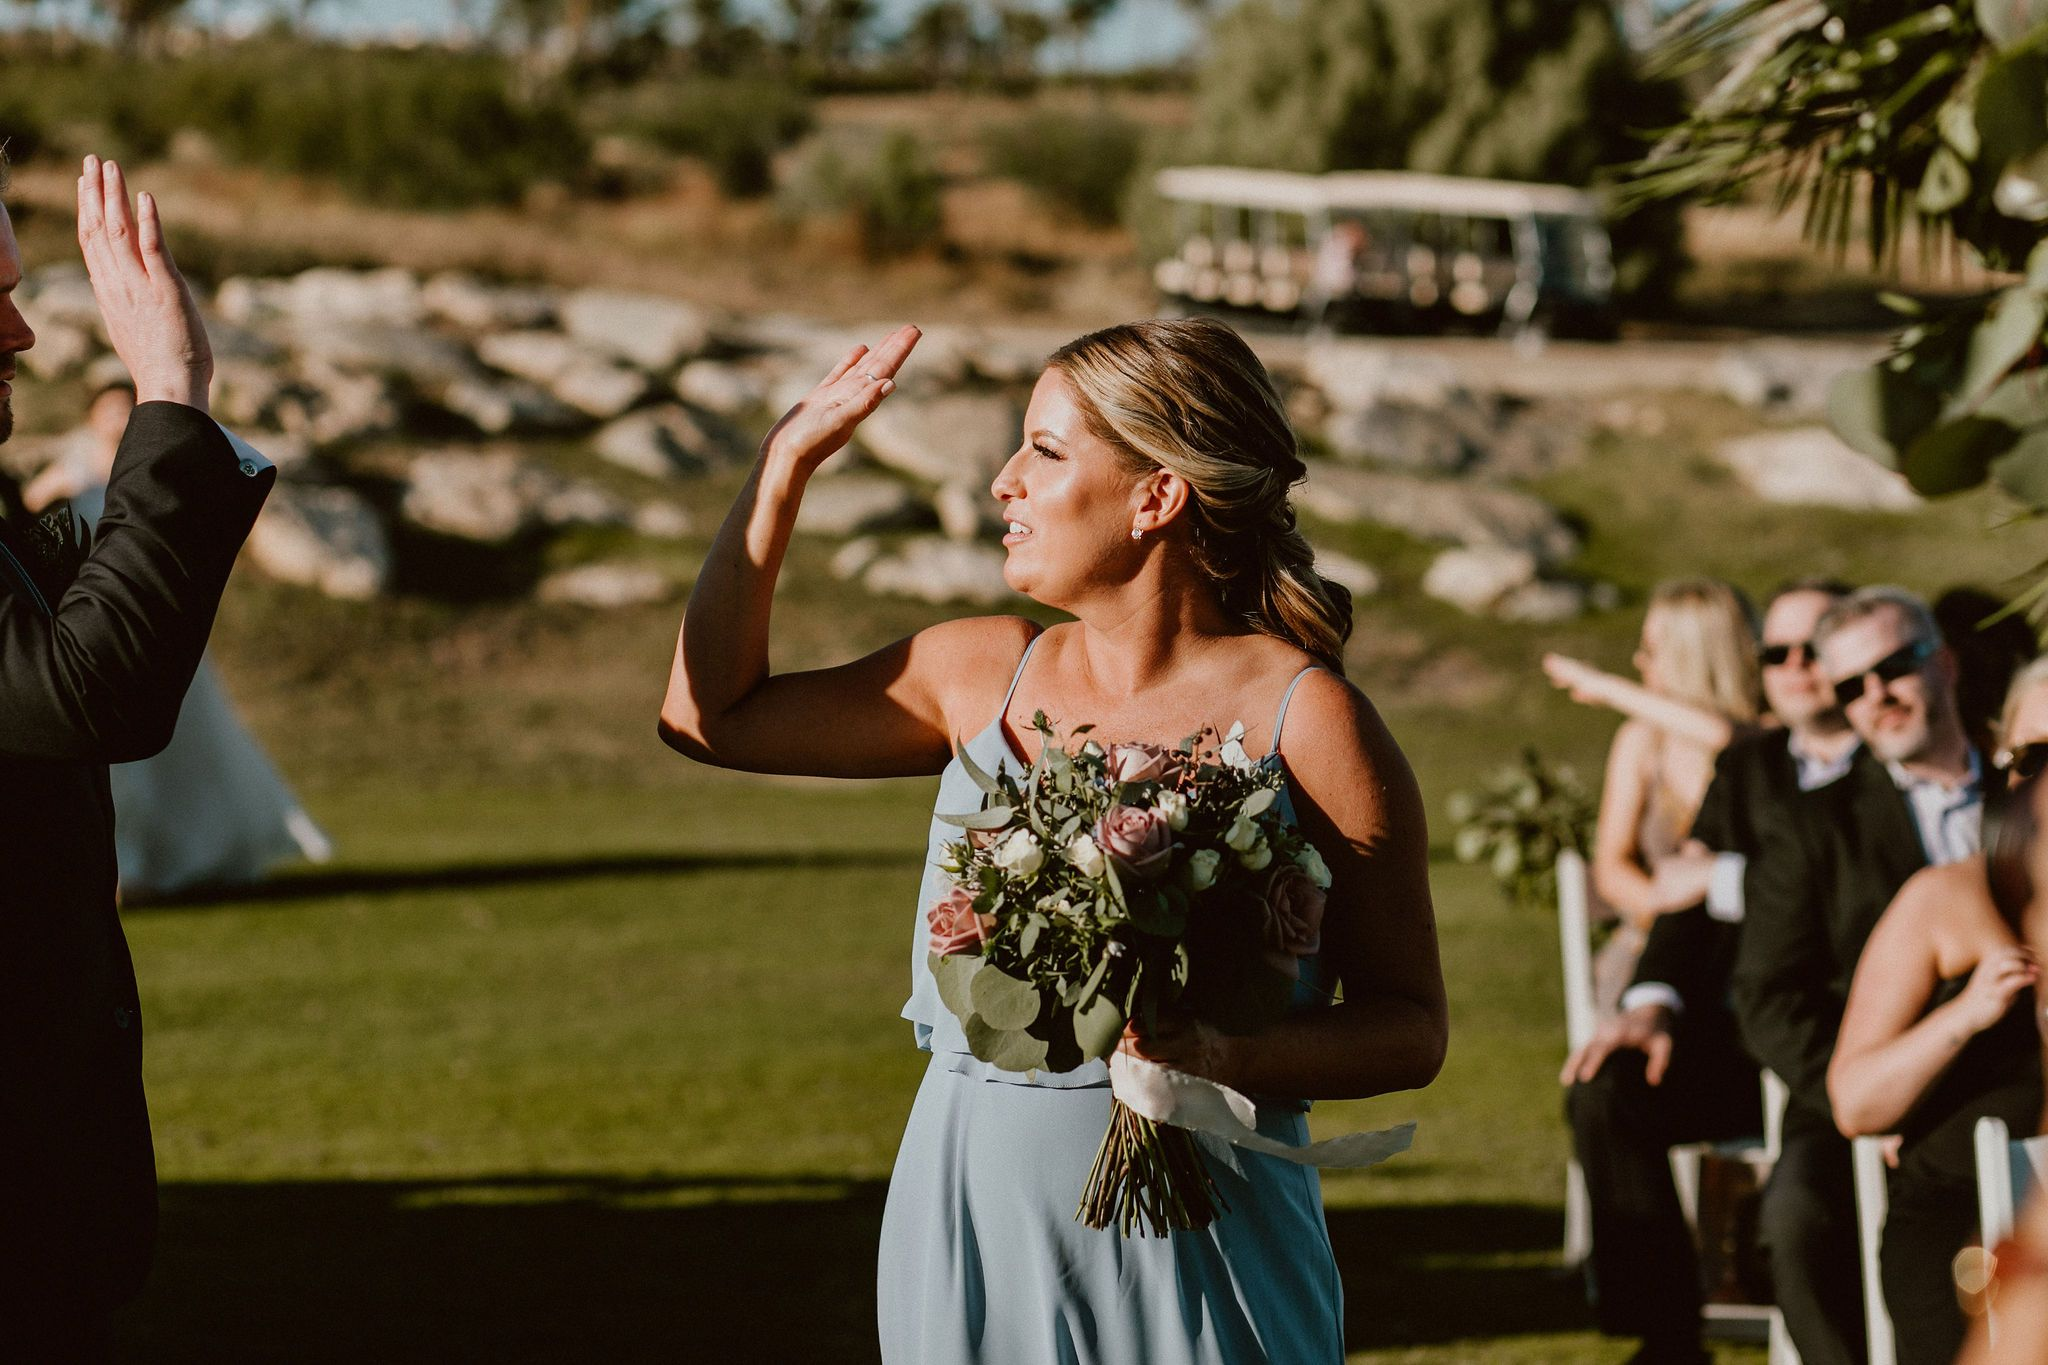 Bridesmaid high fiving guest during the Ceremony Processional. This wedding was at the Cabo Del Sol golf Course, in Los cabos Mexico. Wedding Planning by Cabo Wedding Services. The Photographers were Ana and Jerome. They had Emporio Floral Art for flowers and Jesse Wolff as their designer in Rentals + Decor.